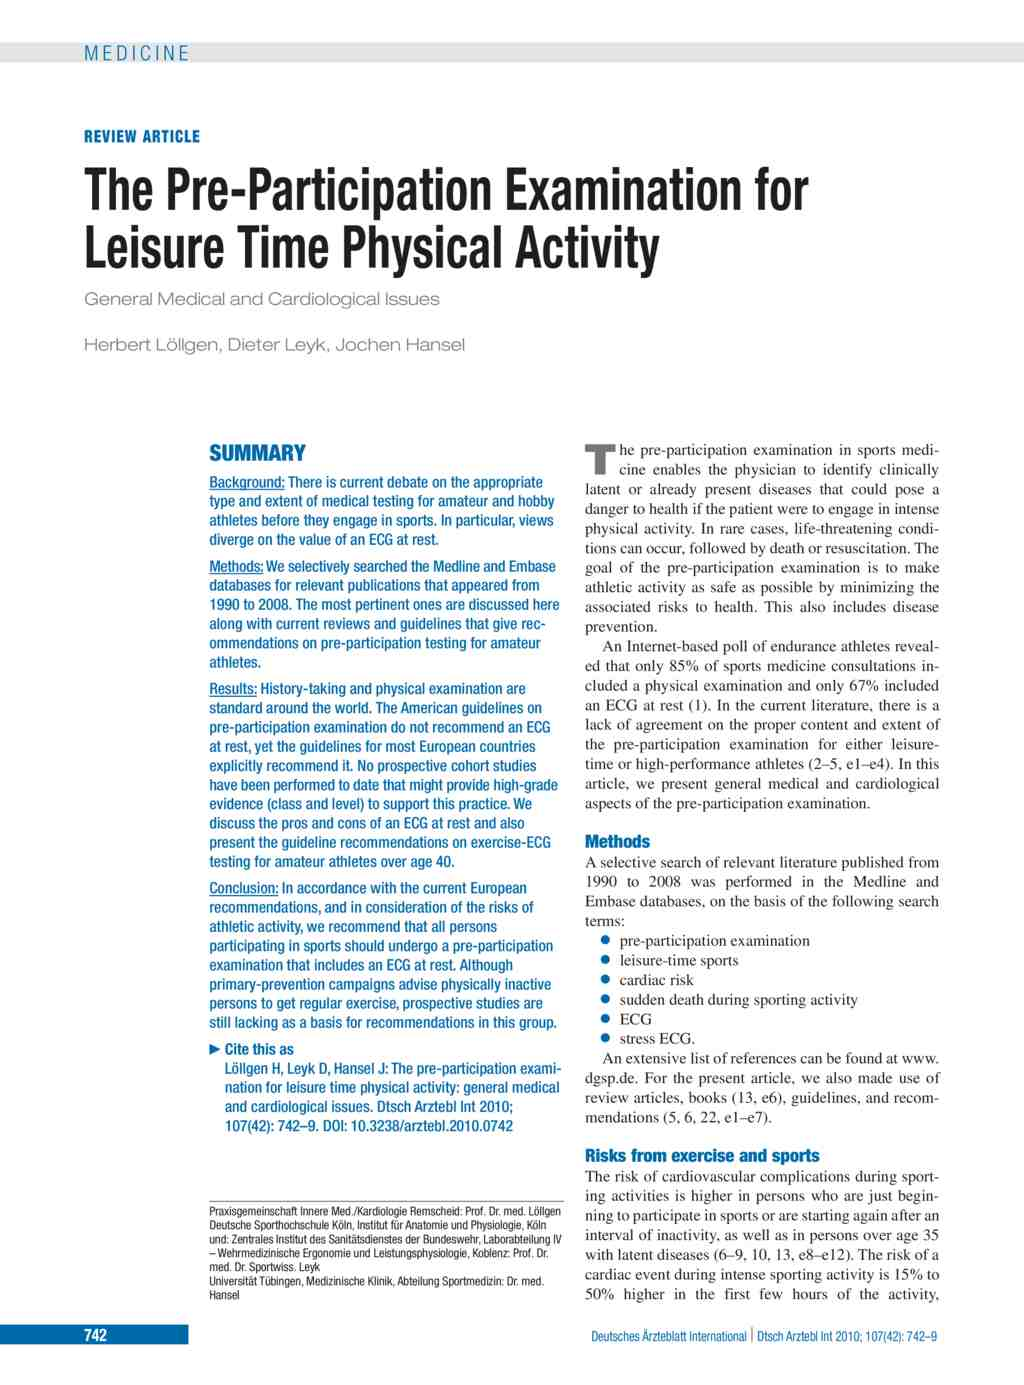 The Pre-Participation Examination for Leisure Time Physical Activity ...